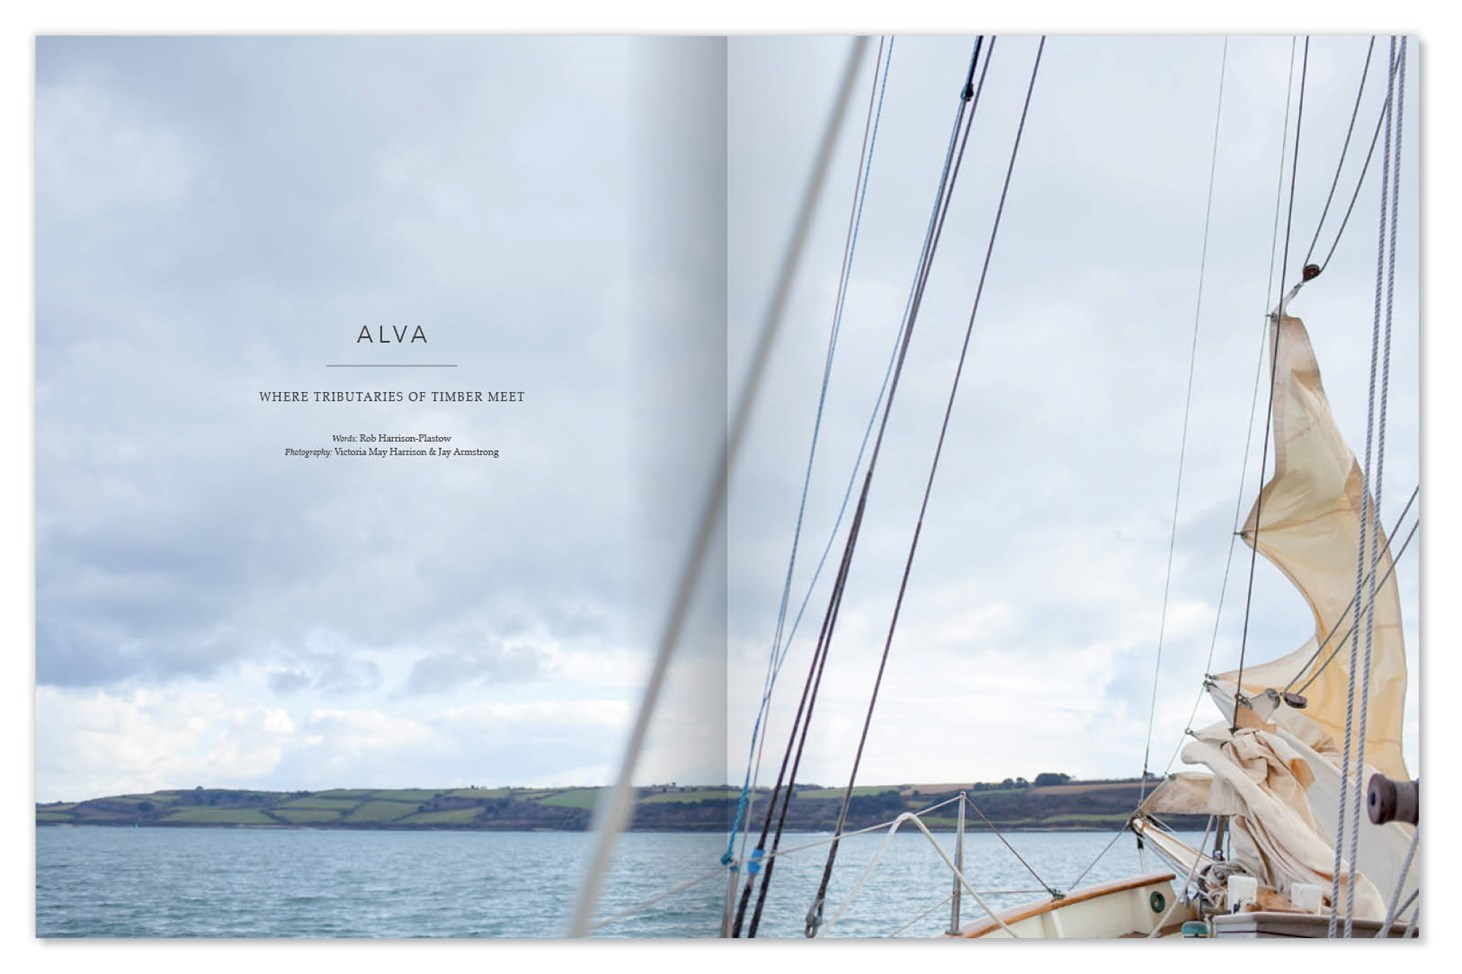 Elementum, design, print, publication, magazine, nature, clean, presentation, layout, Design79, boat, sky, Cornwall